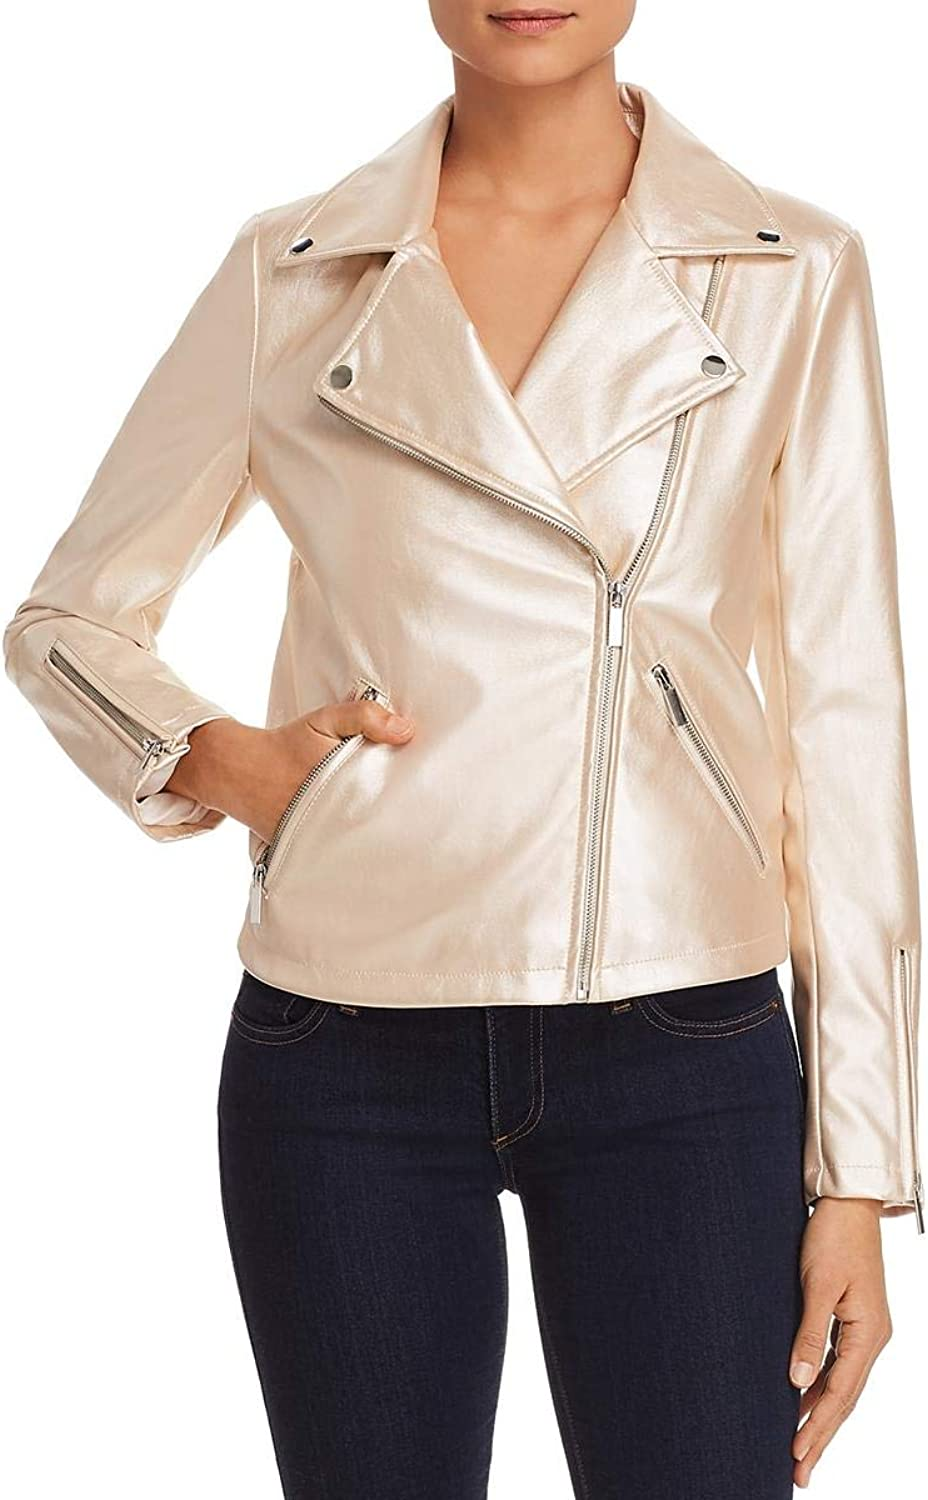 Bagatelle Womens Metallic Faux Leather Motorcycle Jacket